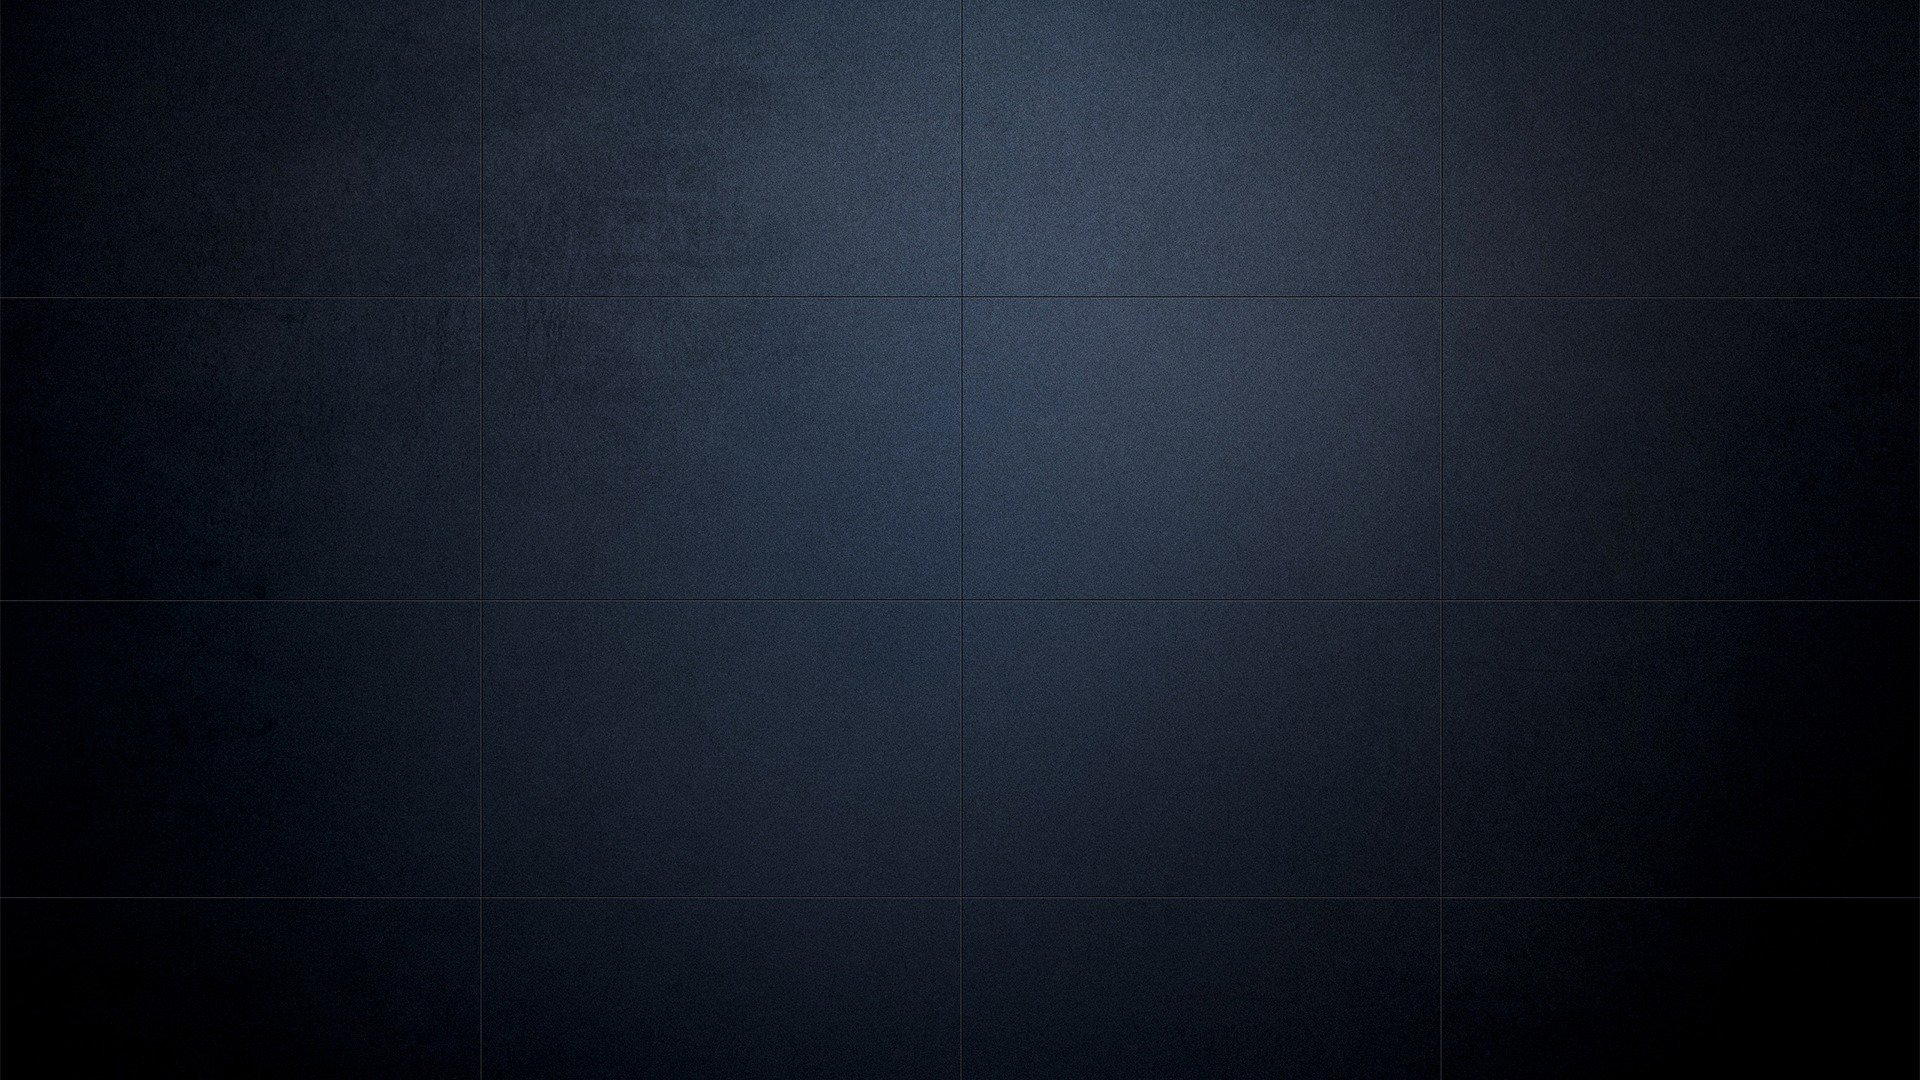 dark-blocks-strips-blue-background-minimalism-textures-stock-1920×1080-wallpaper-wp3404458